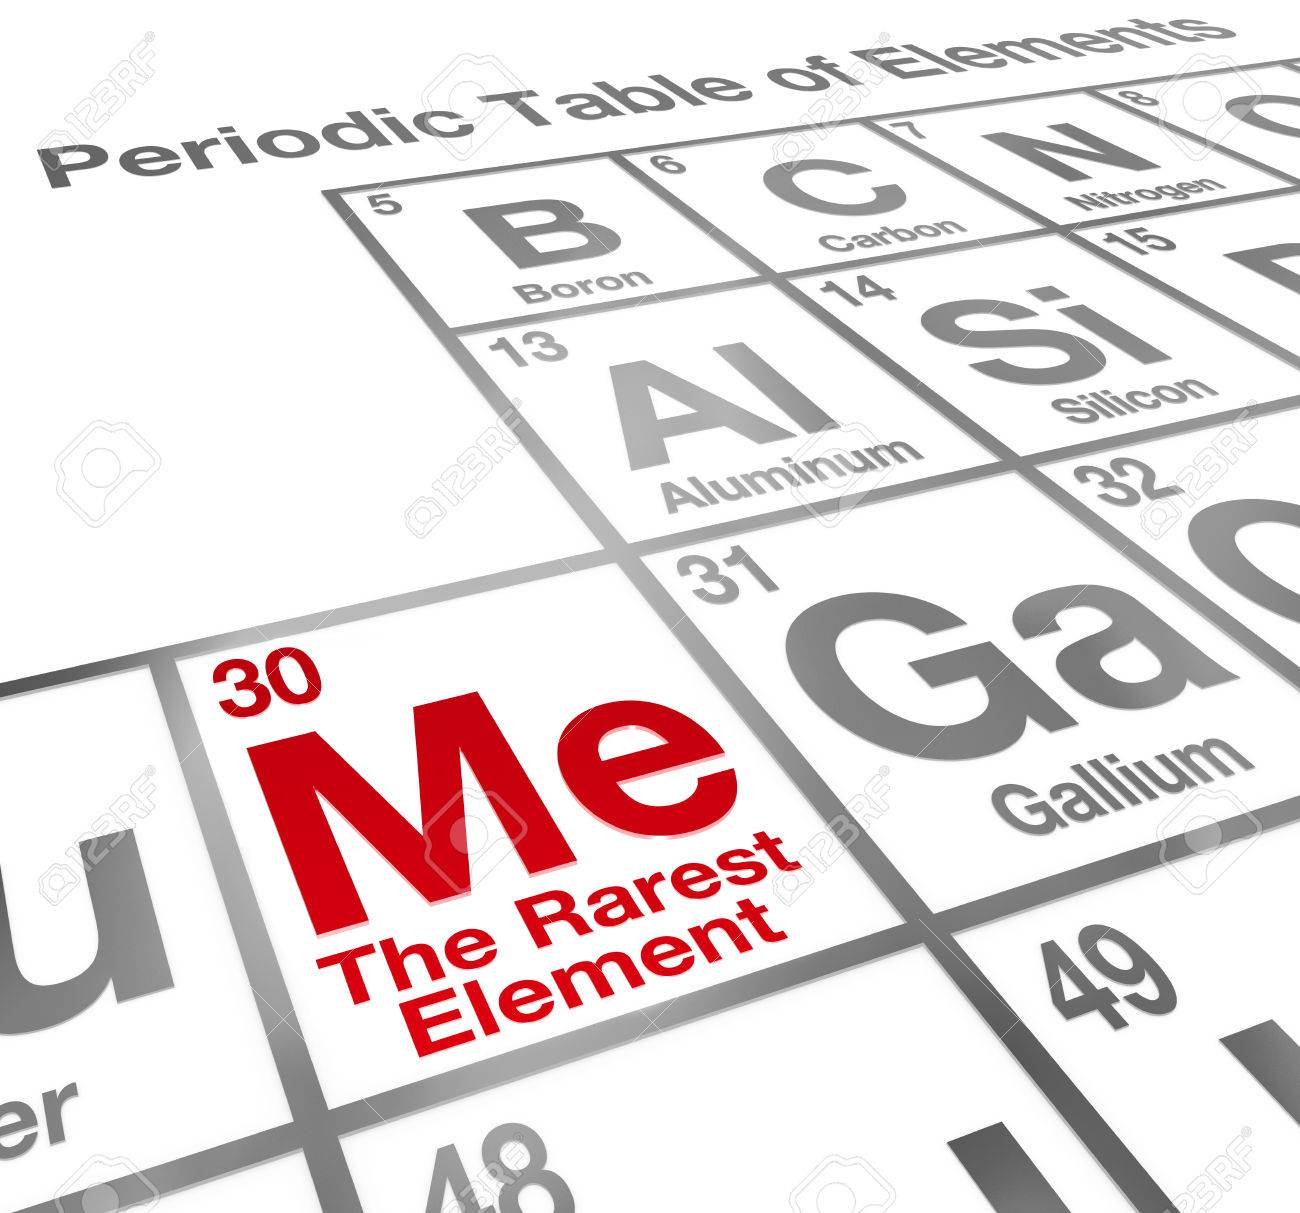 Me the rarest element words on a periodic table to illustrate me the rarest element words on a periodic table to illustrate self confidence and competitive advantage urtaz Choice Image